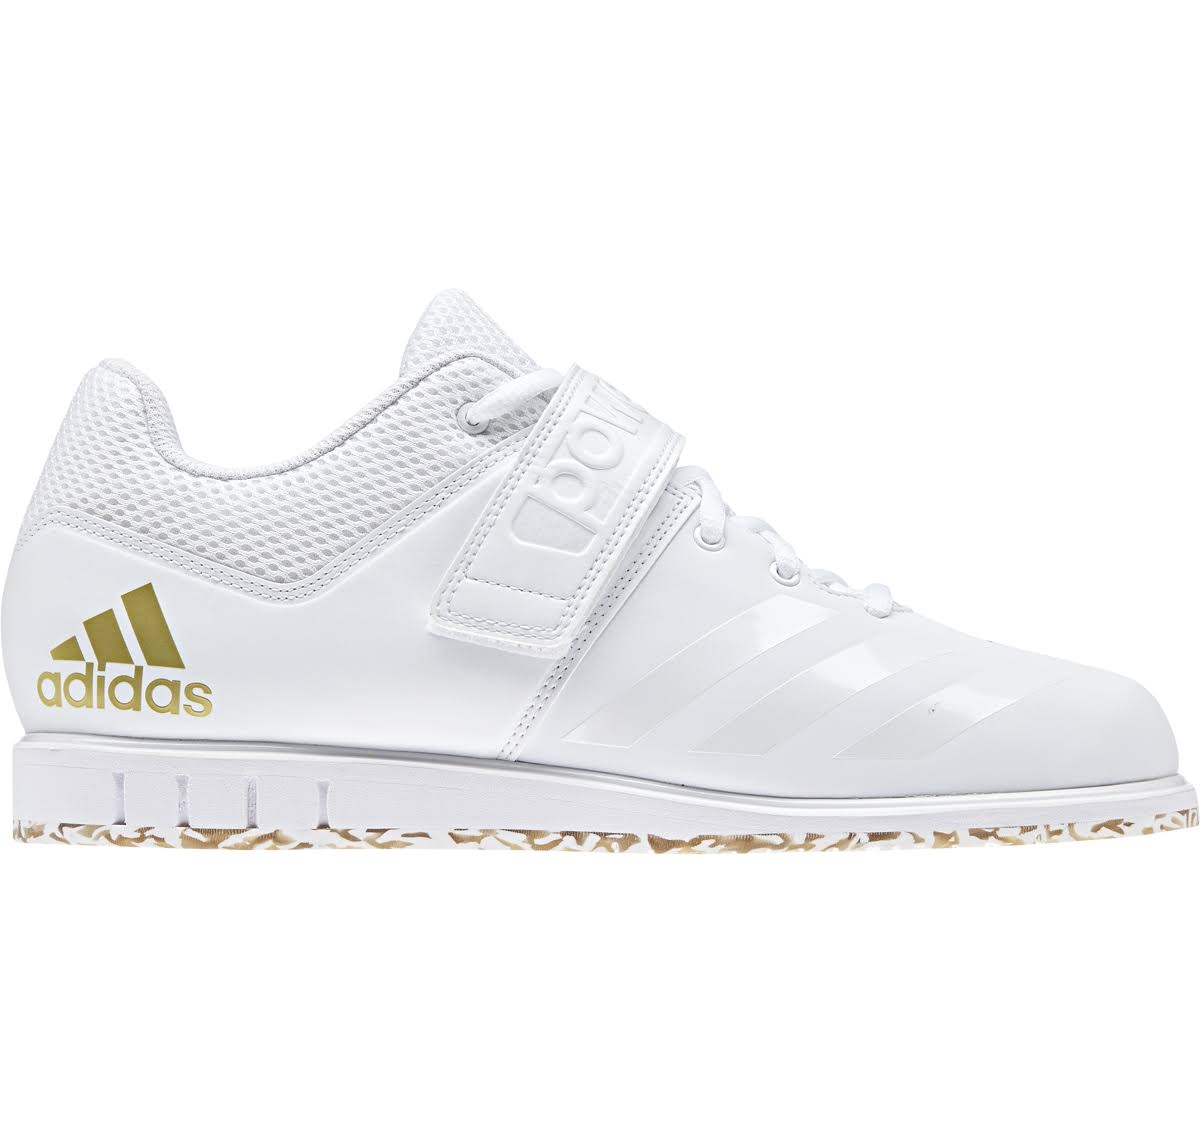 1 Shoes Powerlift 3 Adidas White 14Gewichtheffen heren m8Nnv0wO